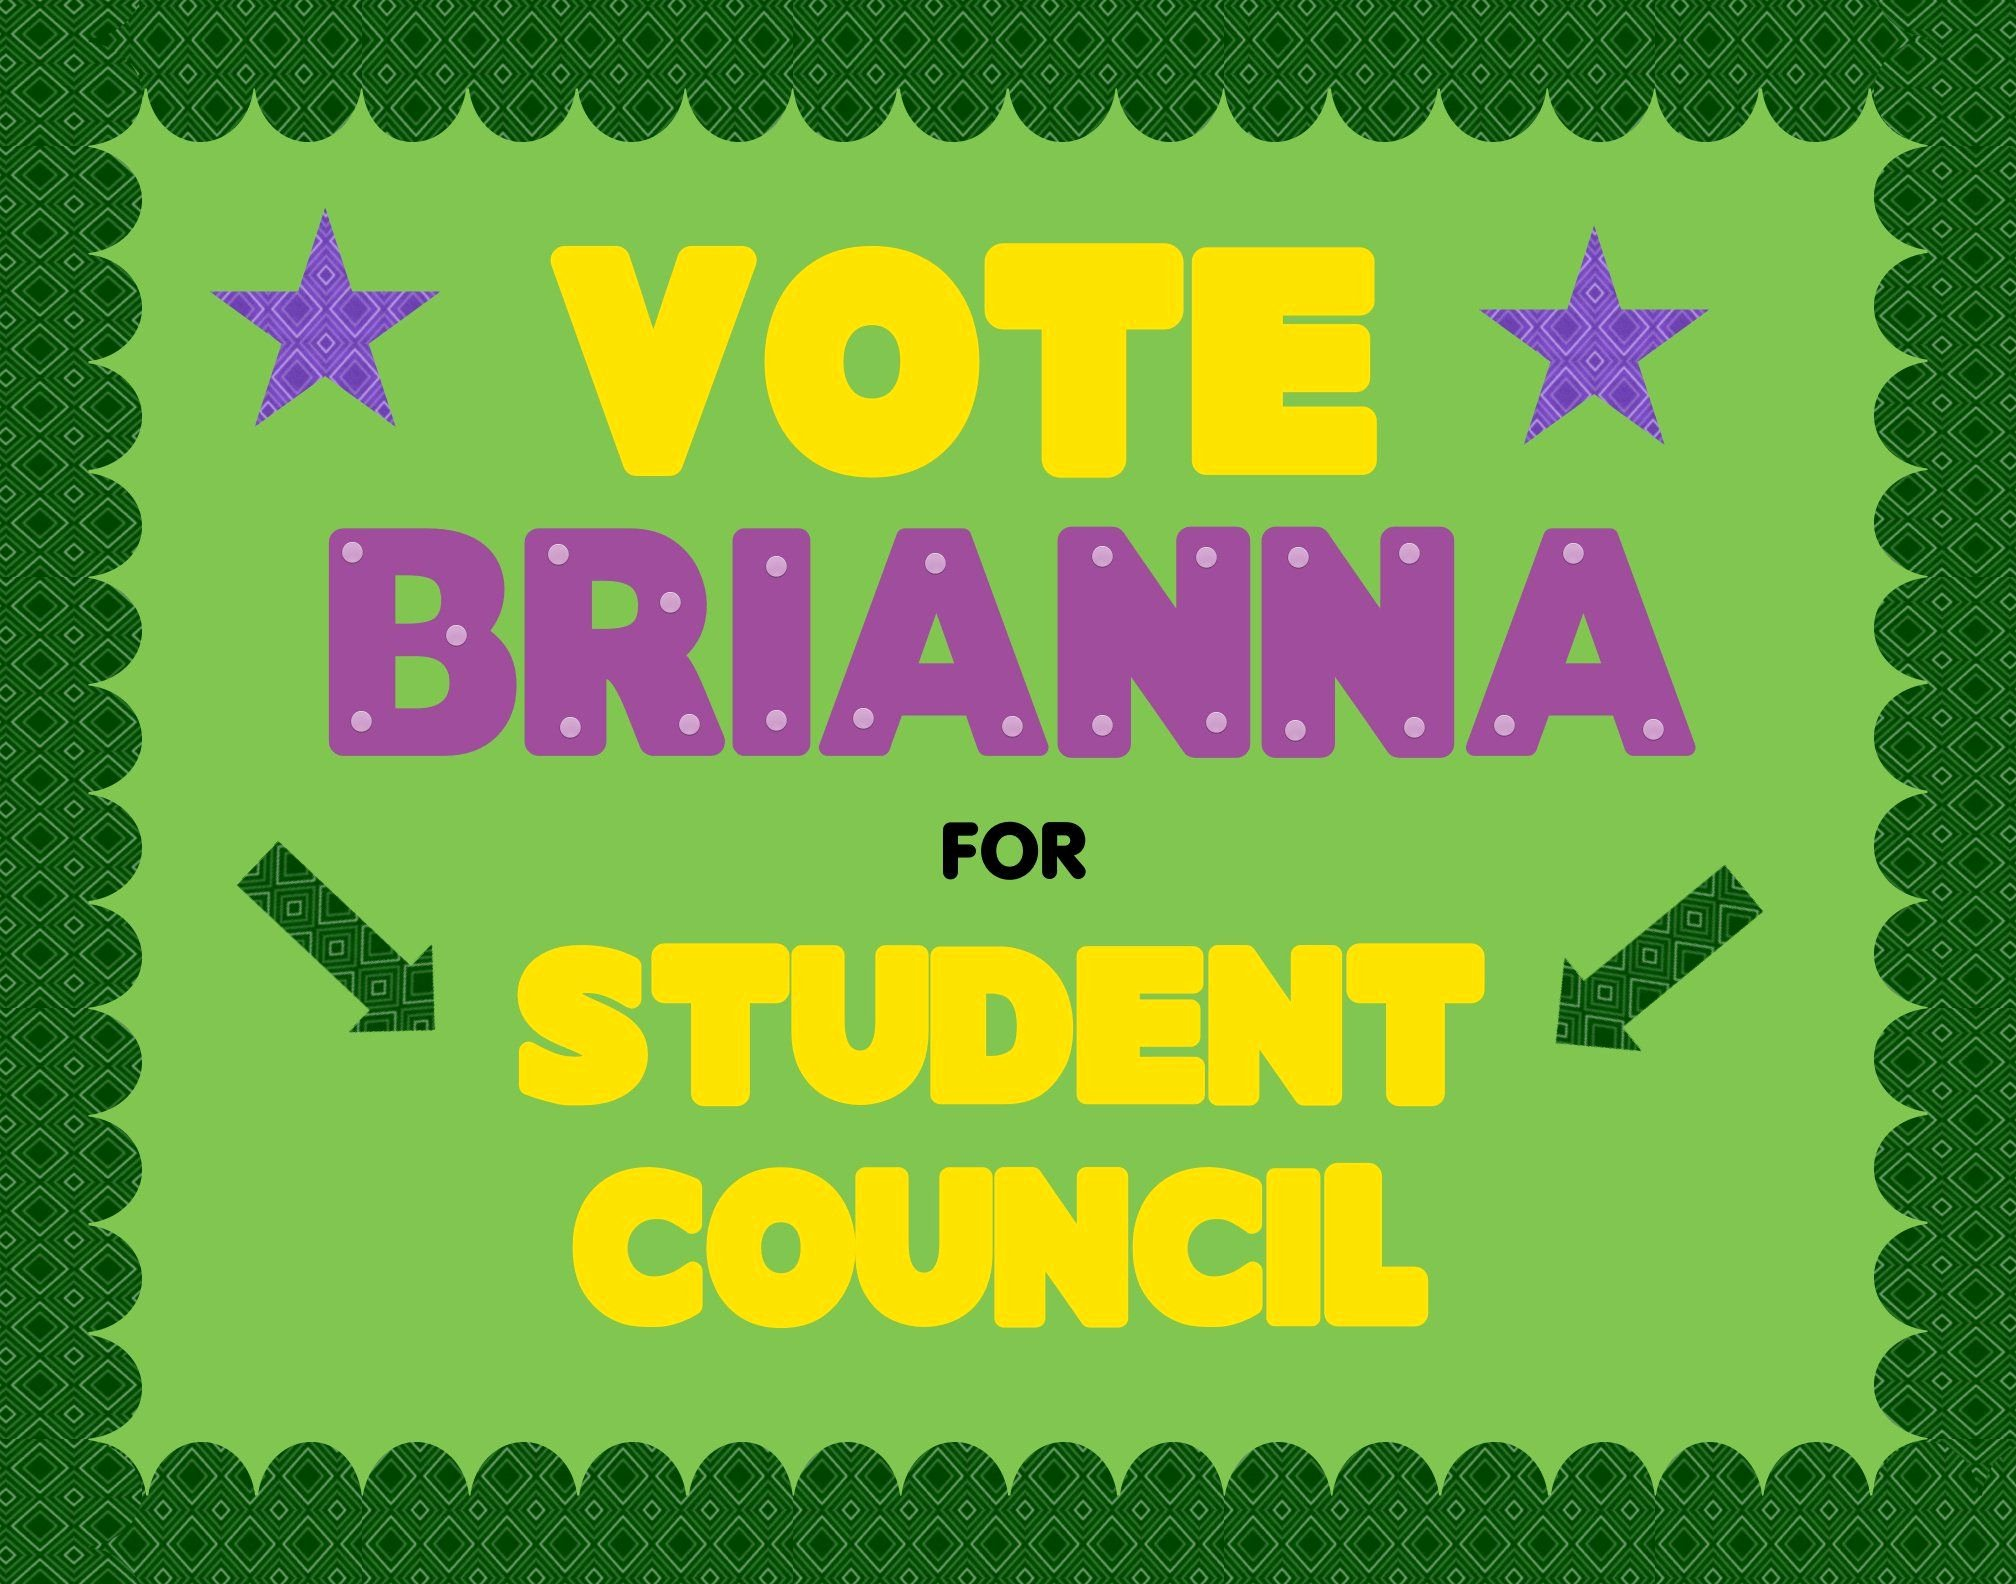 Student Council Poster Templates Beautiful Make A School Election Poster Vote for Student Council Poster Ideas